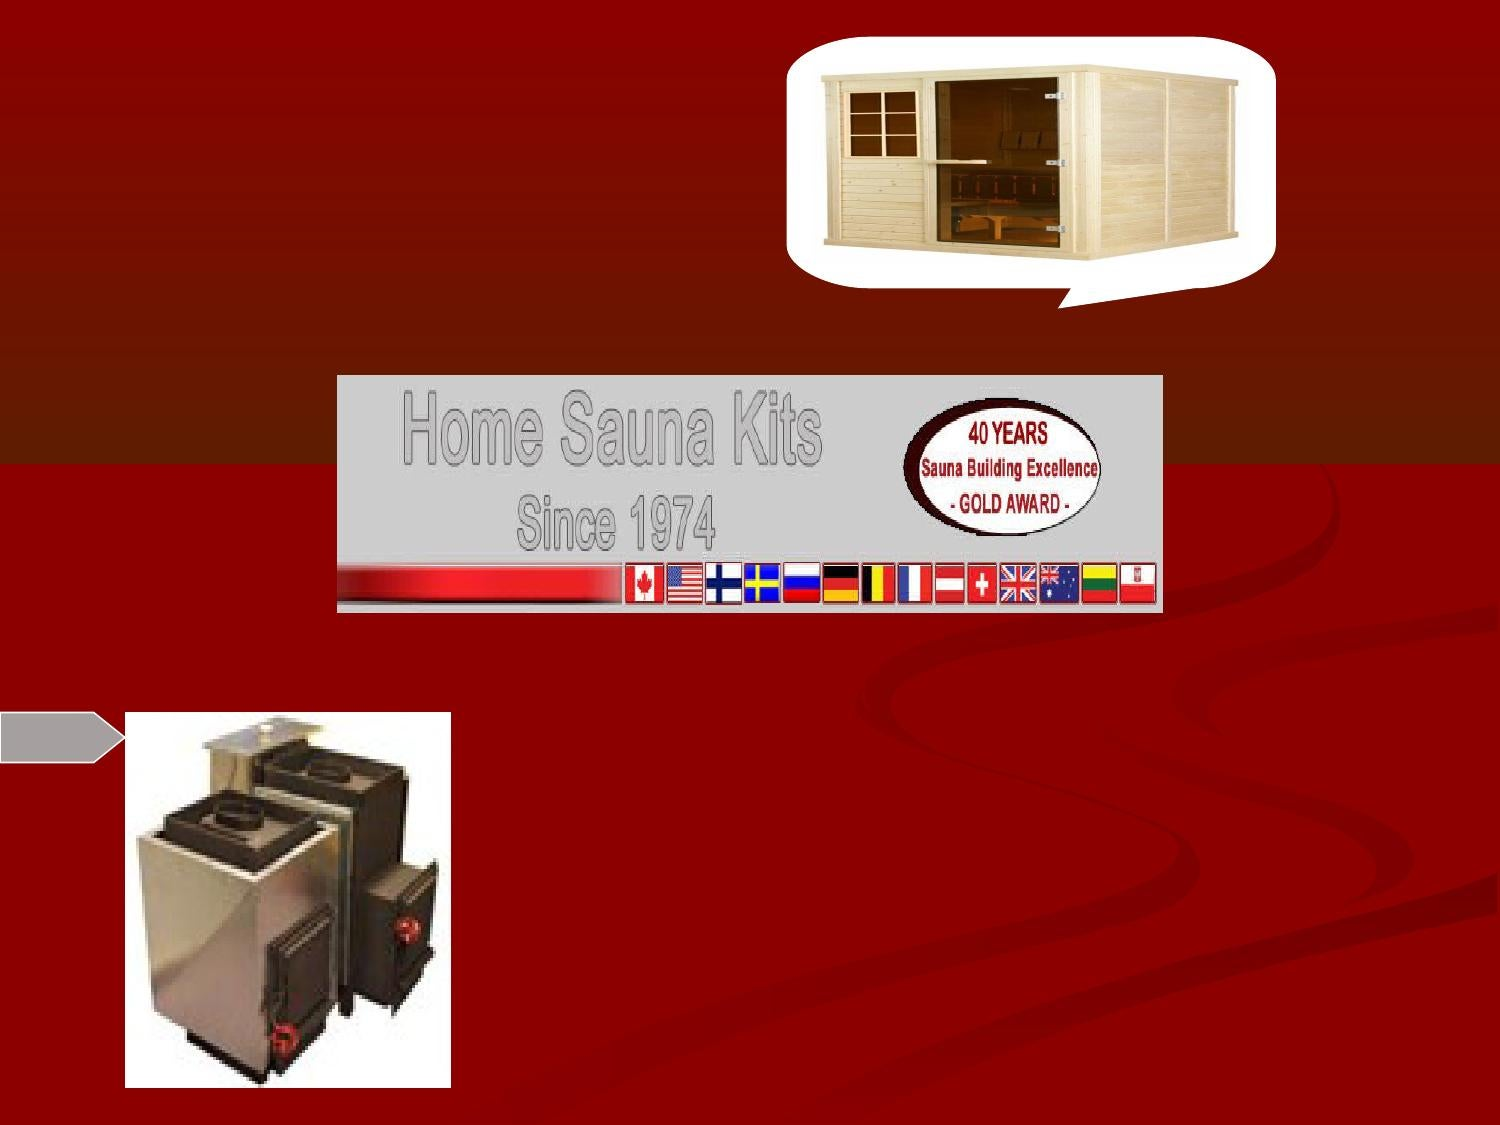 100 Remarquable Concepts Home Sauna Kits Since 1974